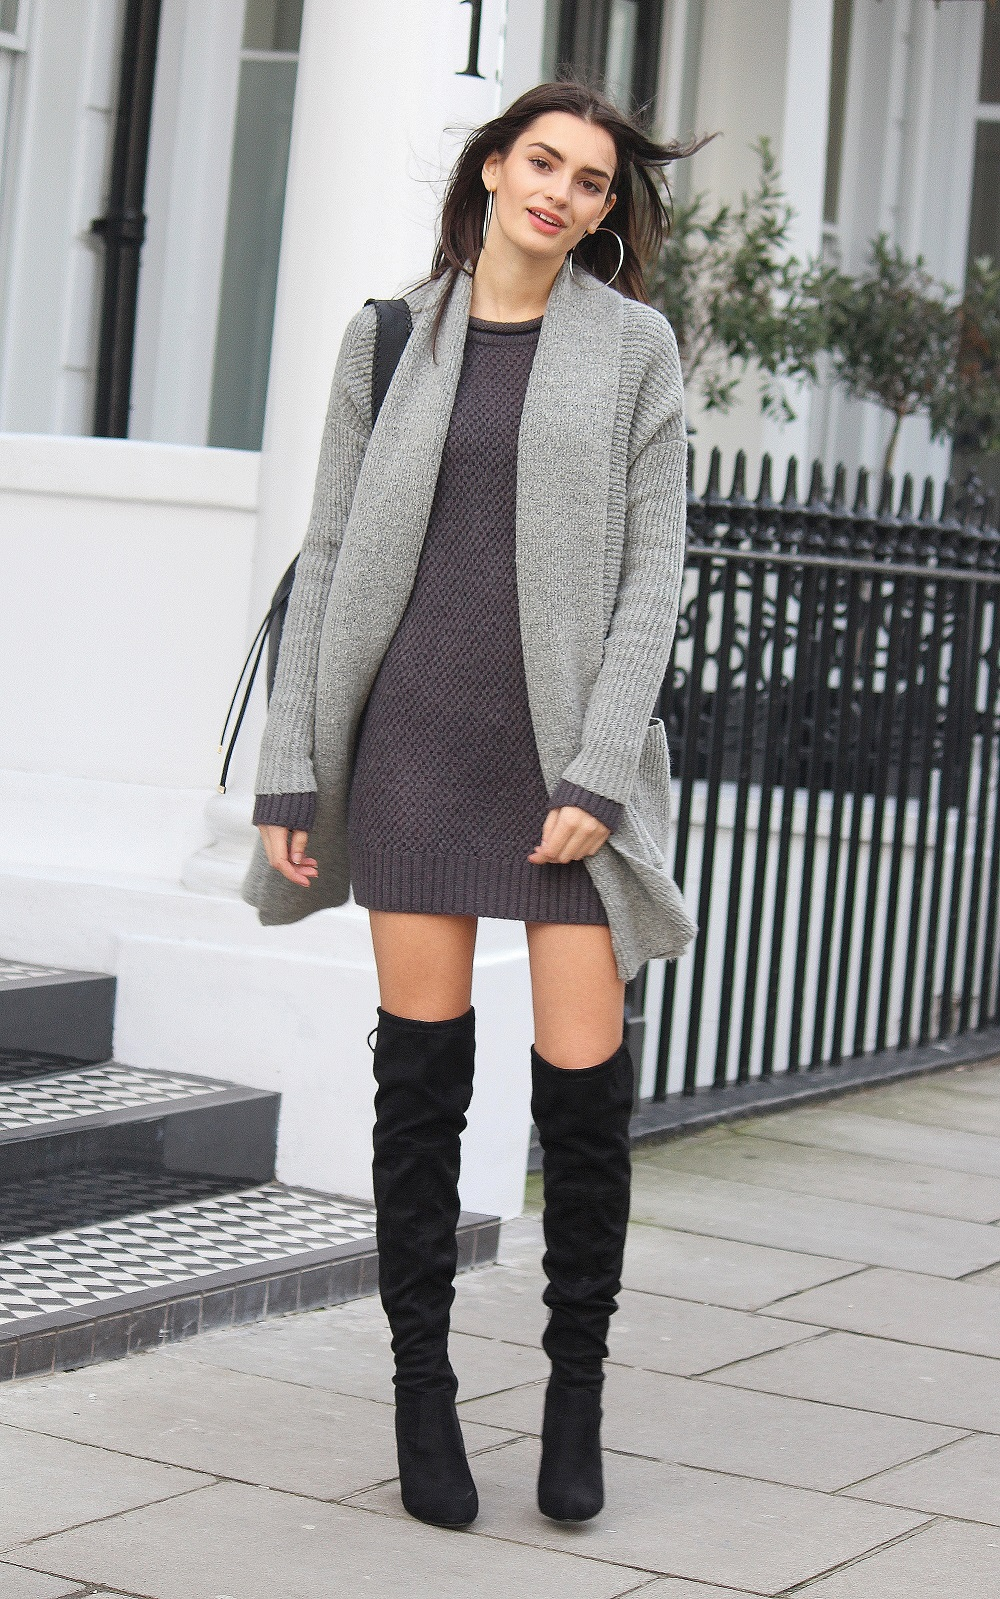 peexo fashion blogger layering knitwear